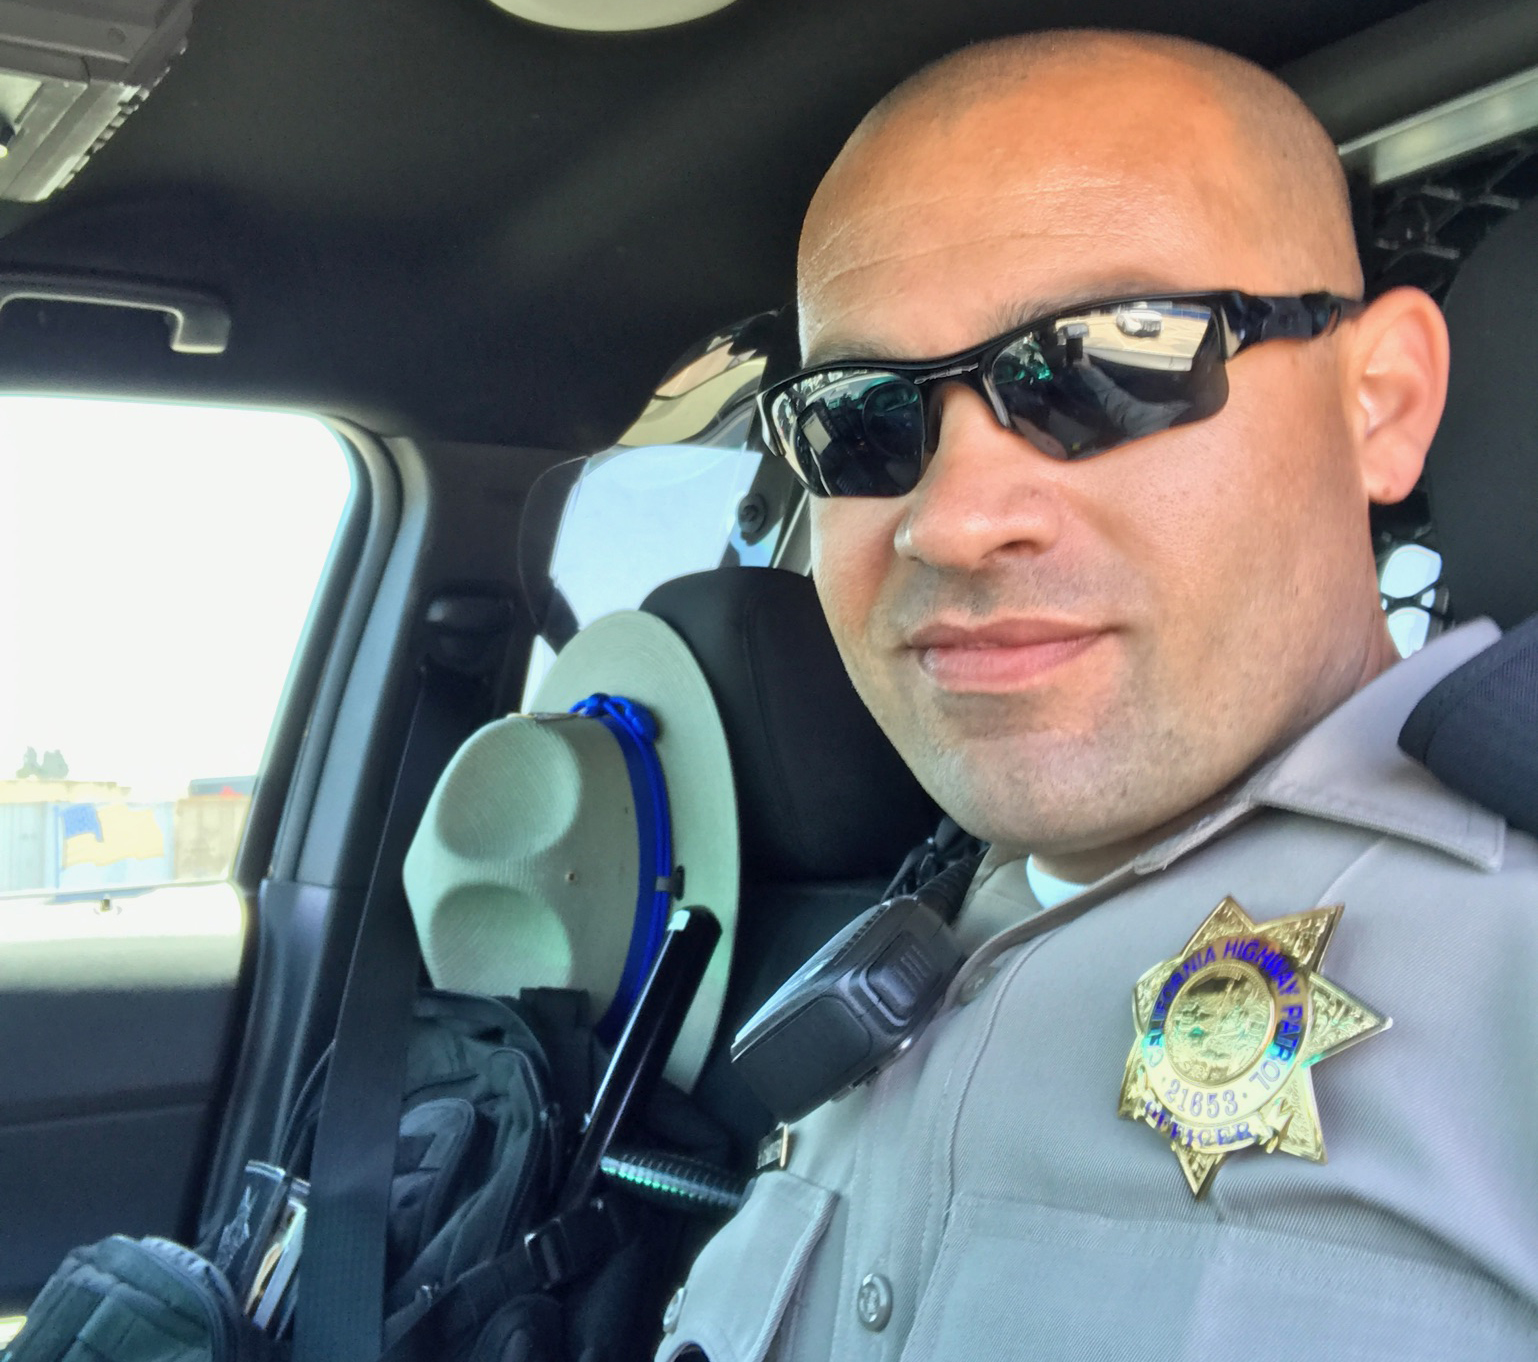 Driver faces murder and DUI charges in death of CHP officer